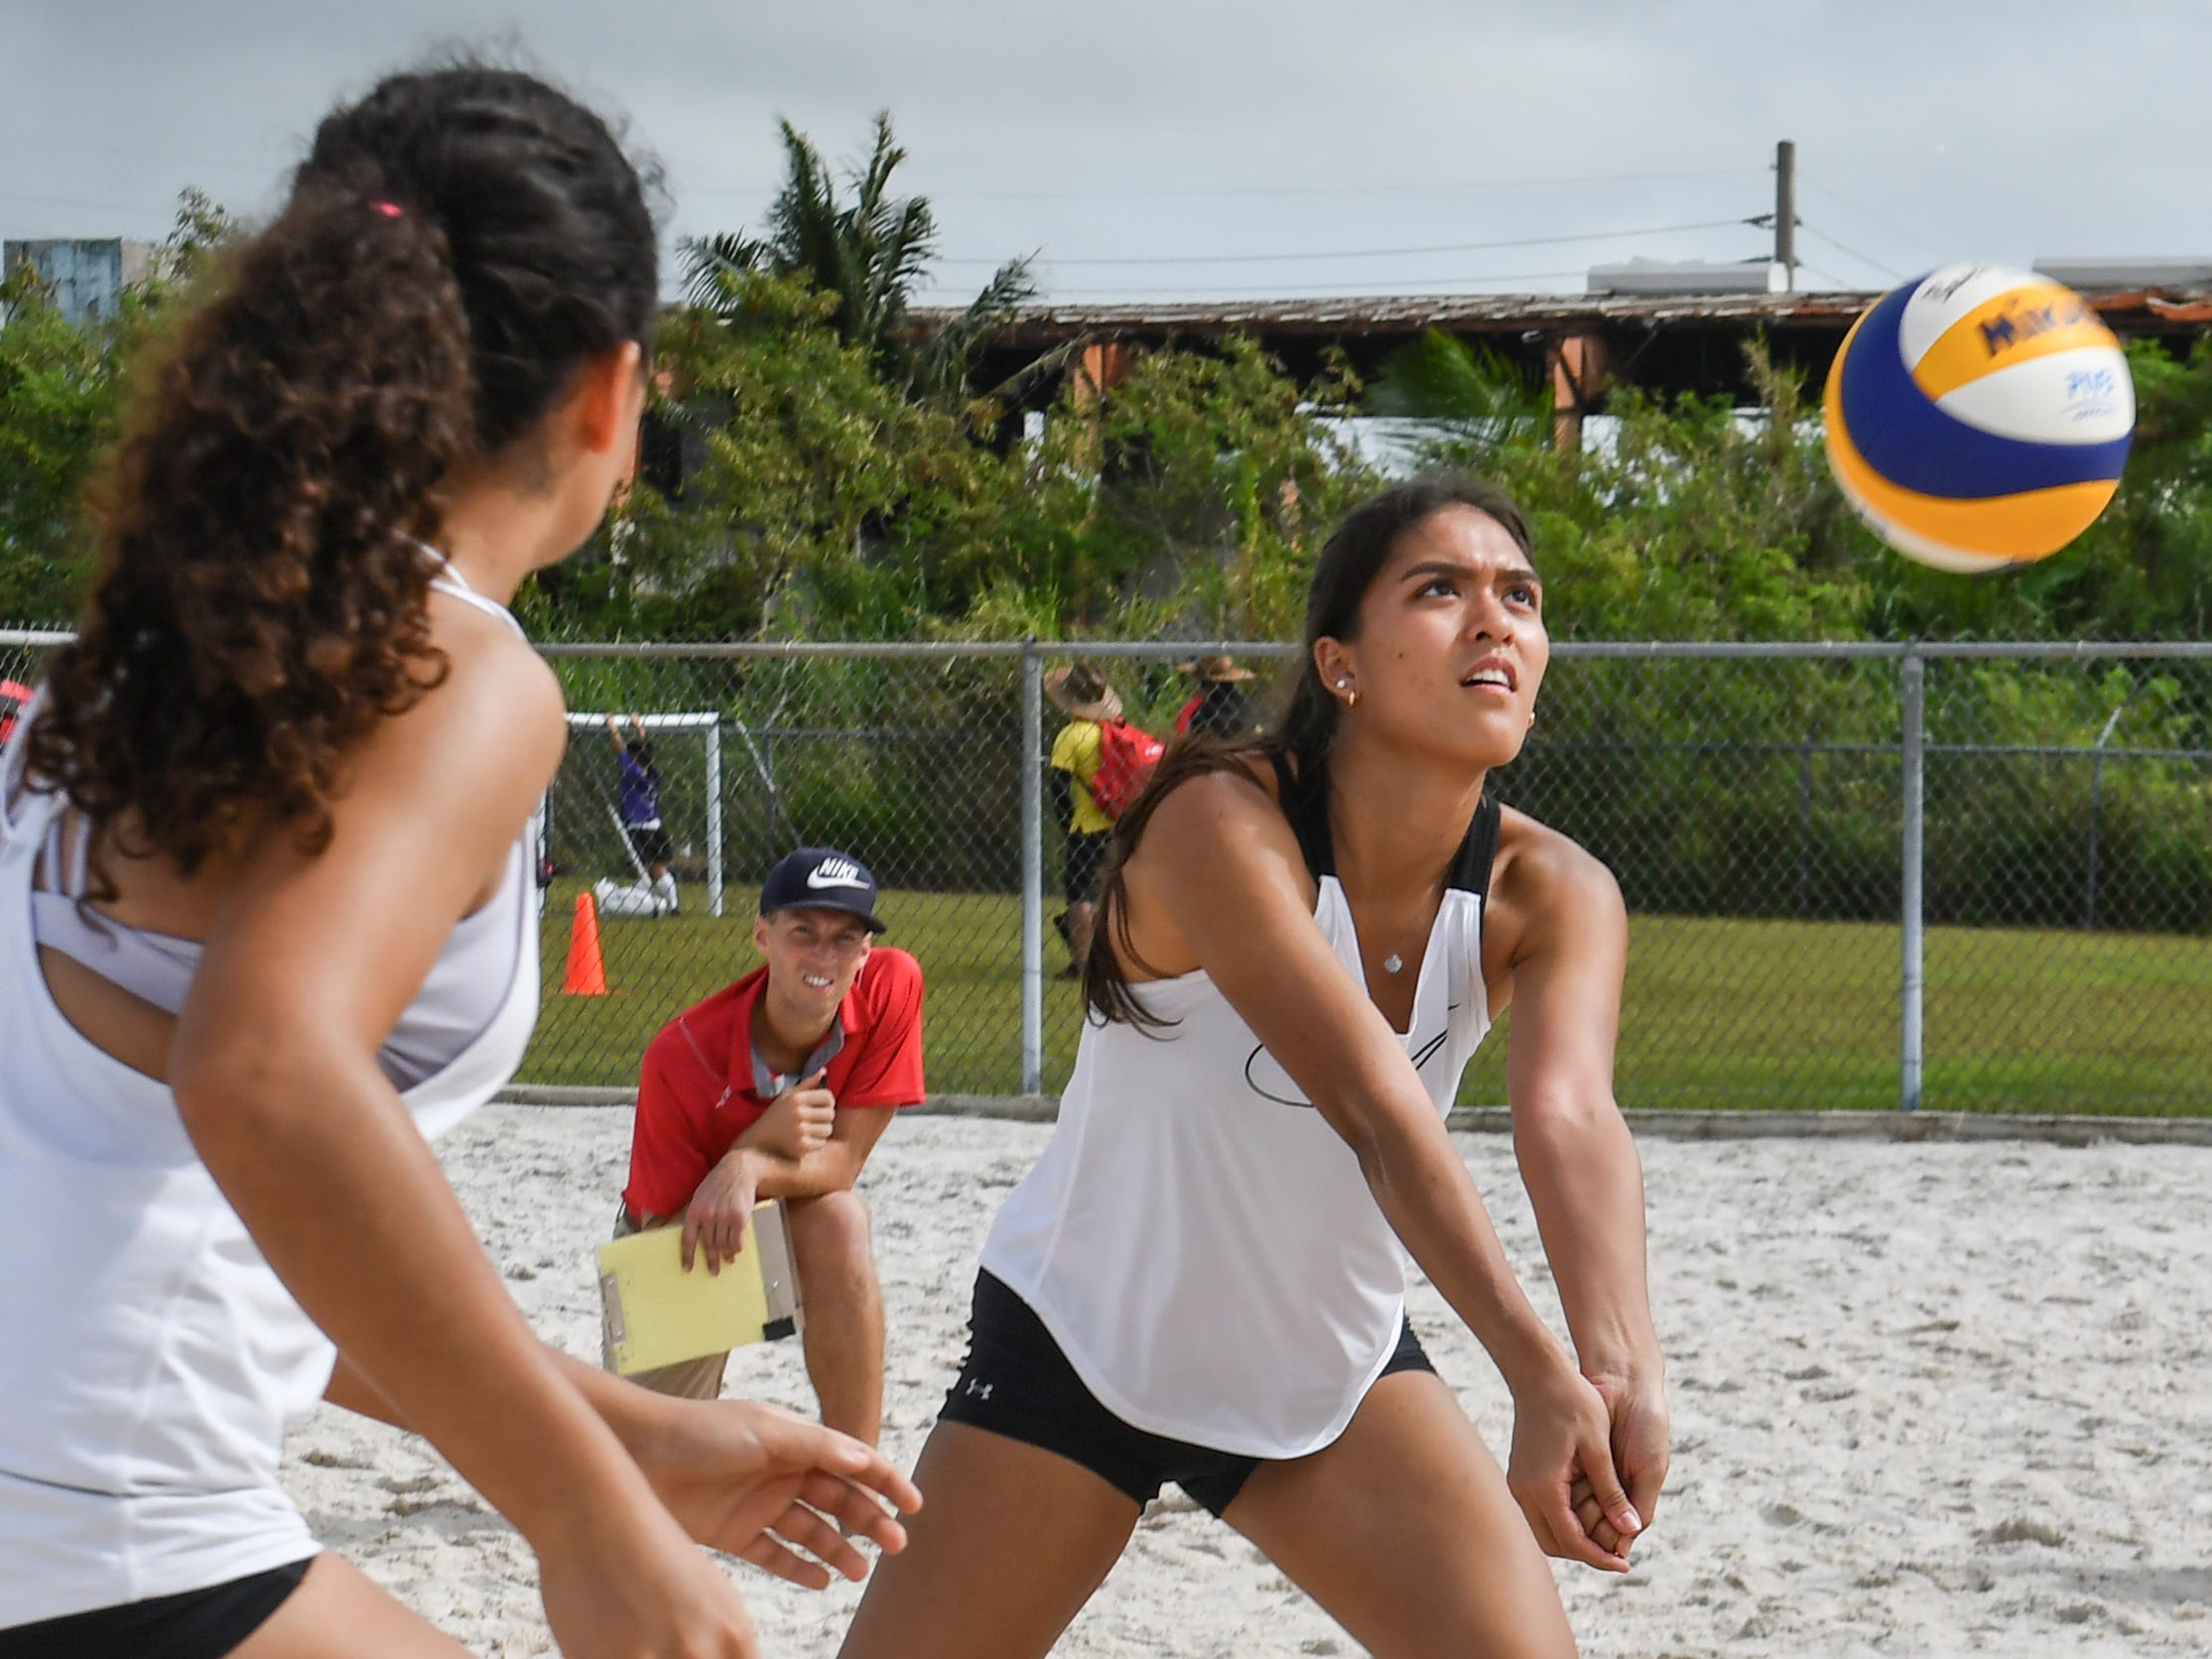 St. John's Knights White's Laressa Halladay bumps a volley over the net during an IIAAG beach volleyball game against the Harvest Christian Academy Eagles at the Guam Football Association National Training Center in Dededo on Saturday, Feb. 9, 2019.